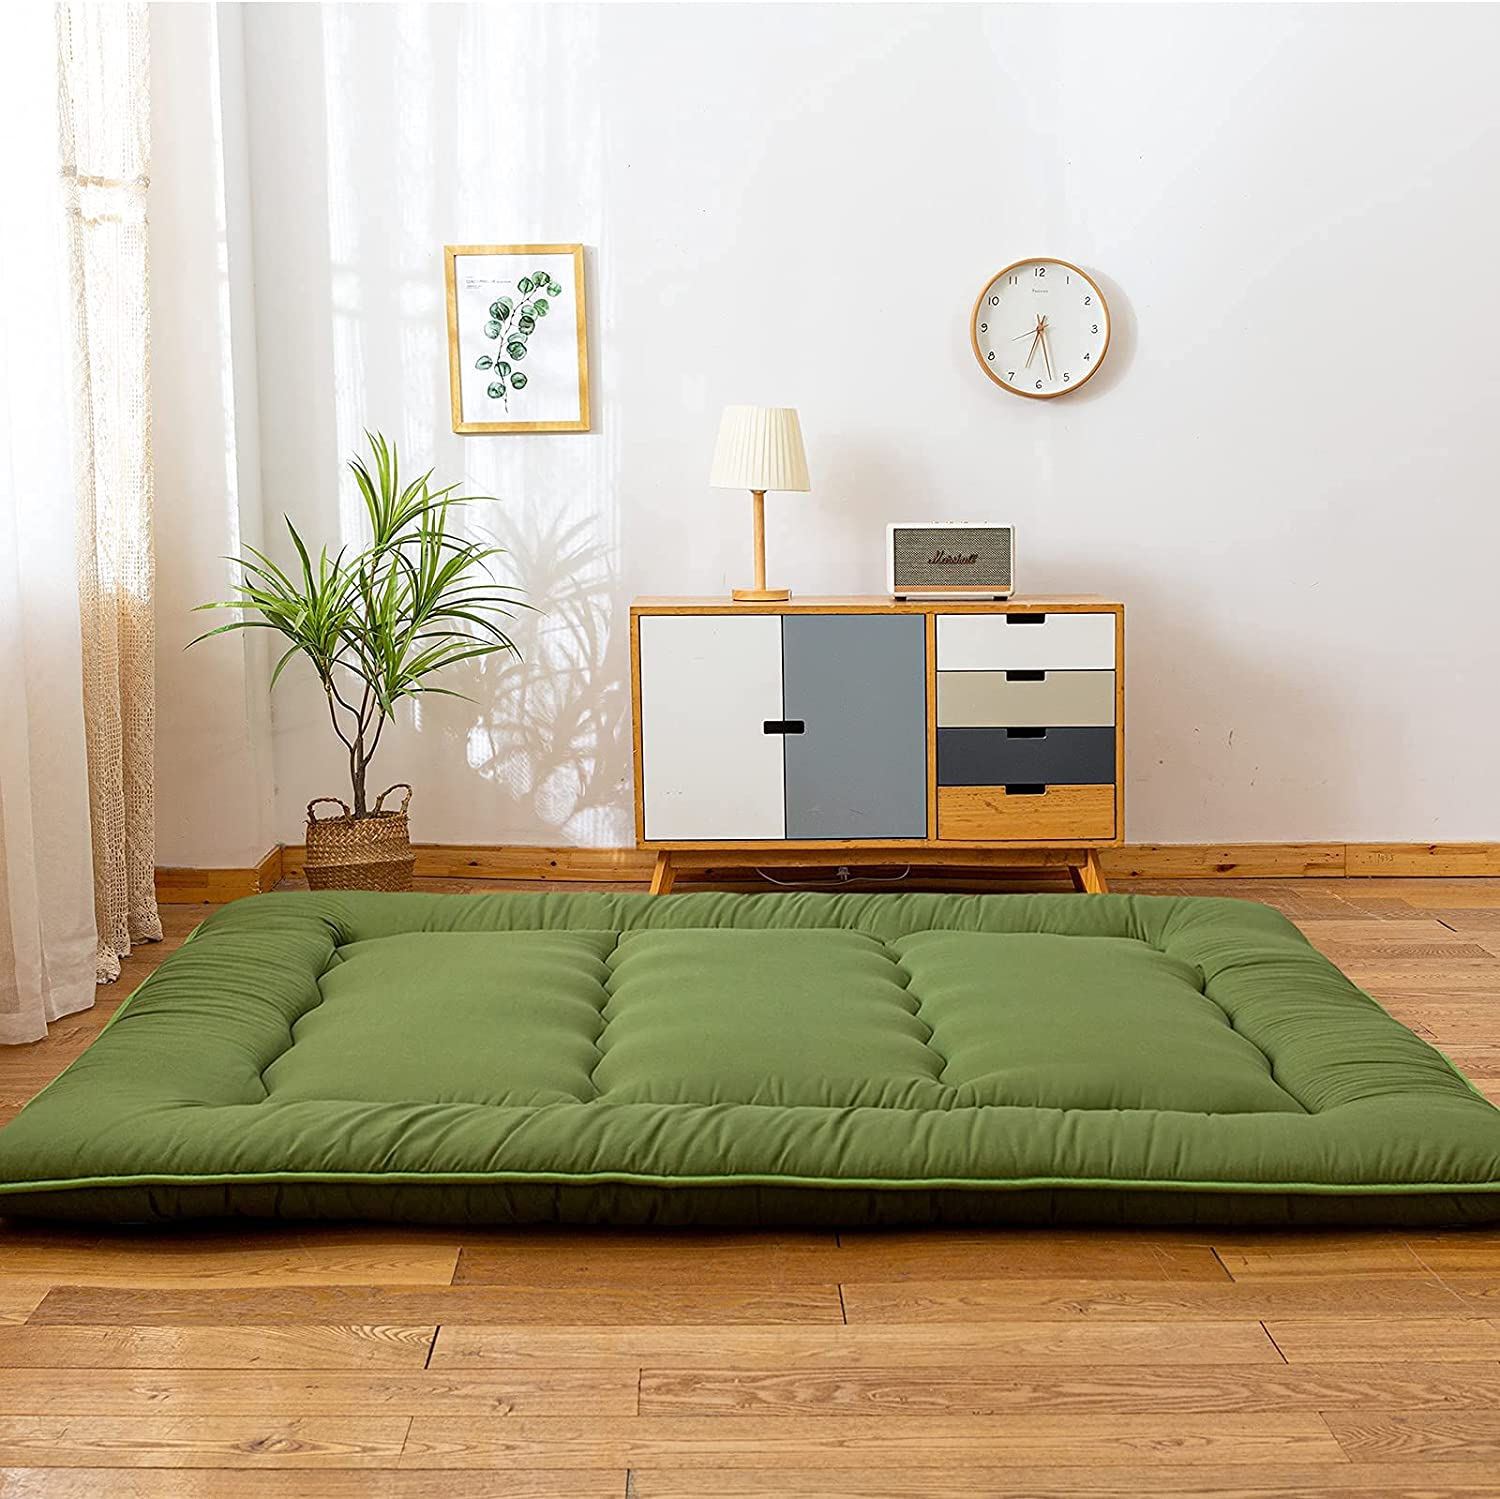 Green Japanese Shiki Futon Mattress Max 43% OFF Gues Up Roll Max 76% OFF Floor